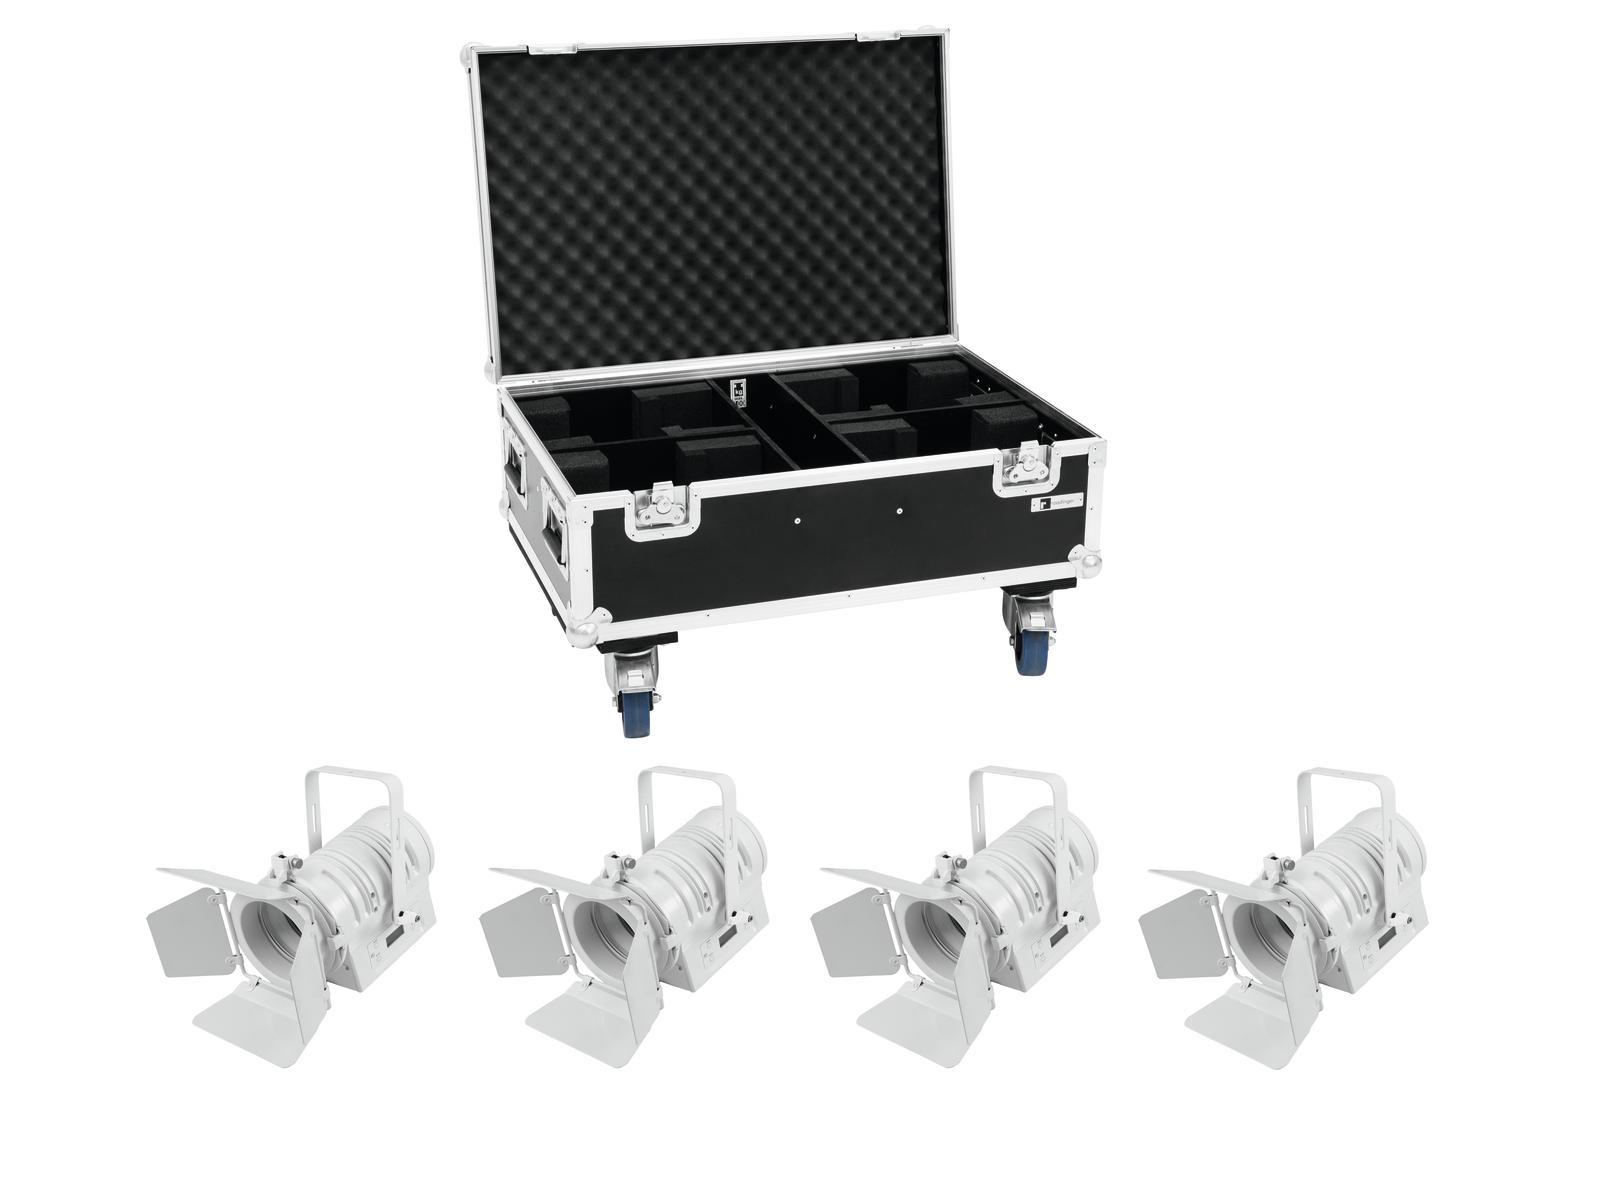 EUROLITE Set 4x LED THA-40PC ws + Case